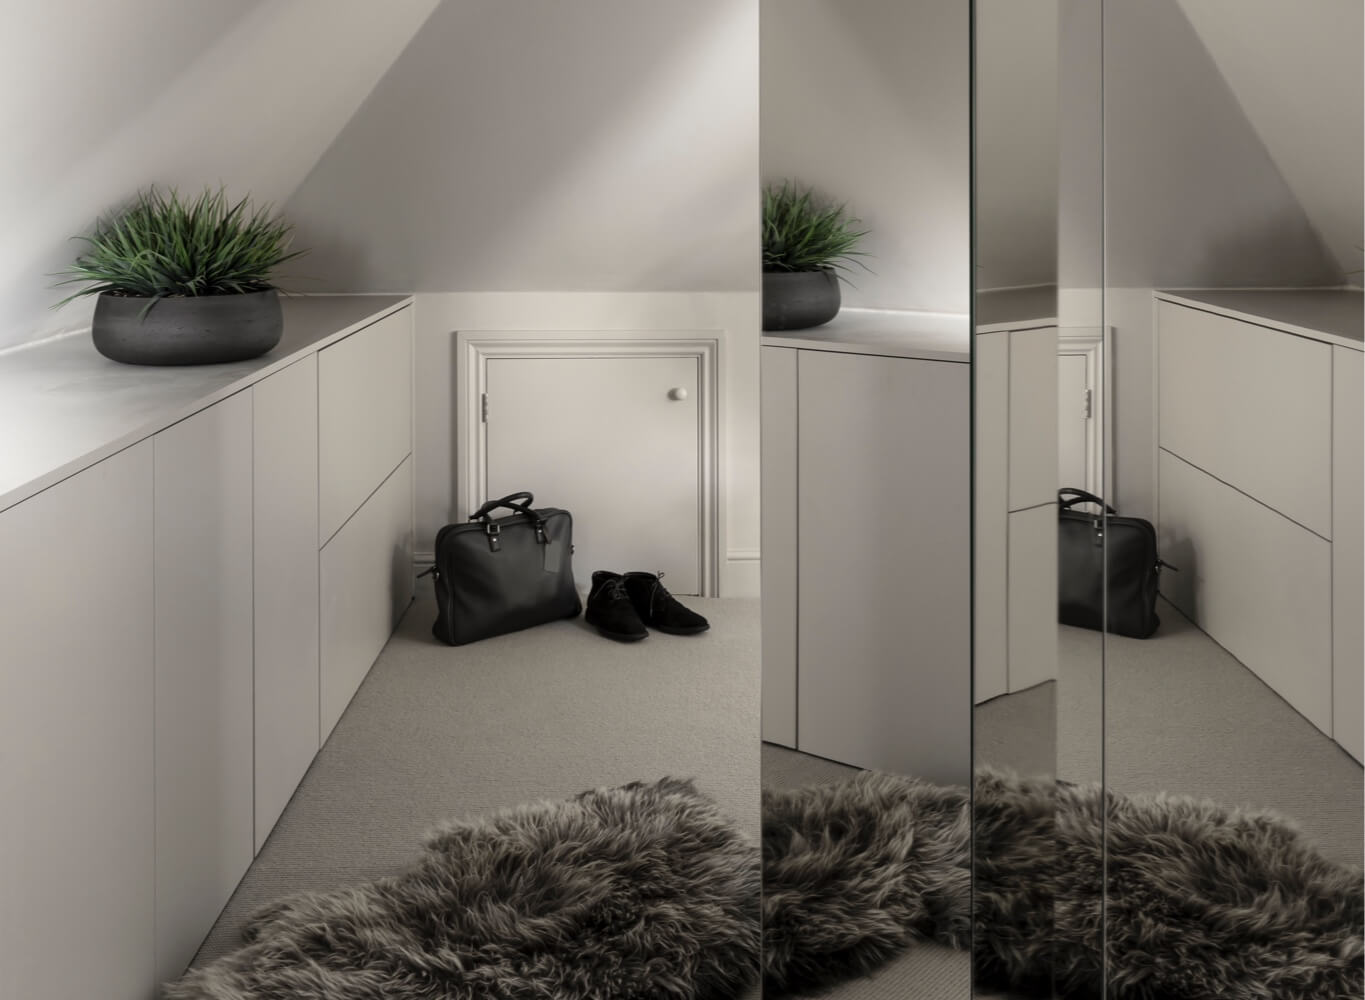 plumb-gallery-ensuite-dressing-room